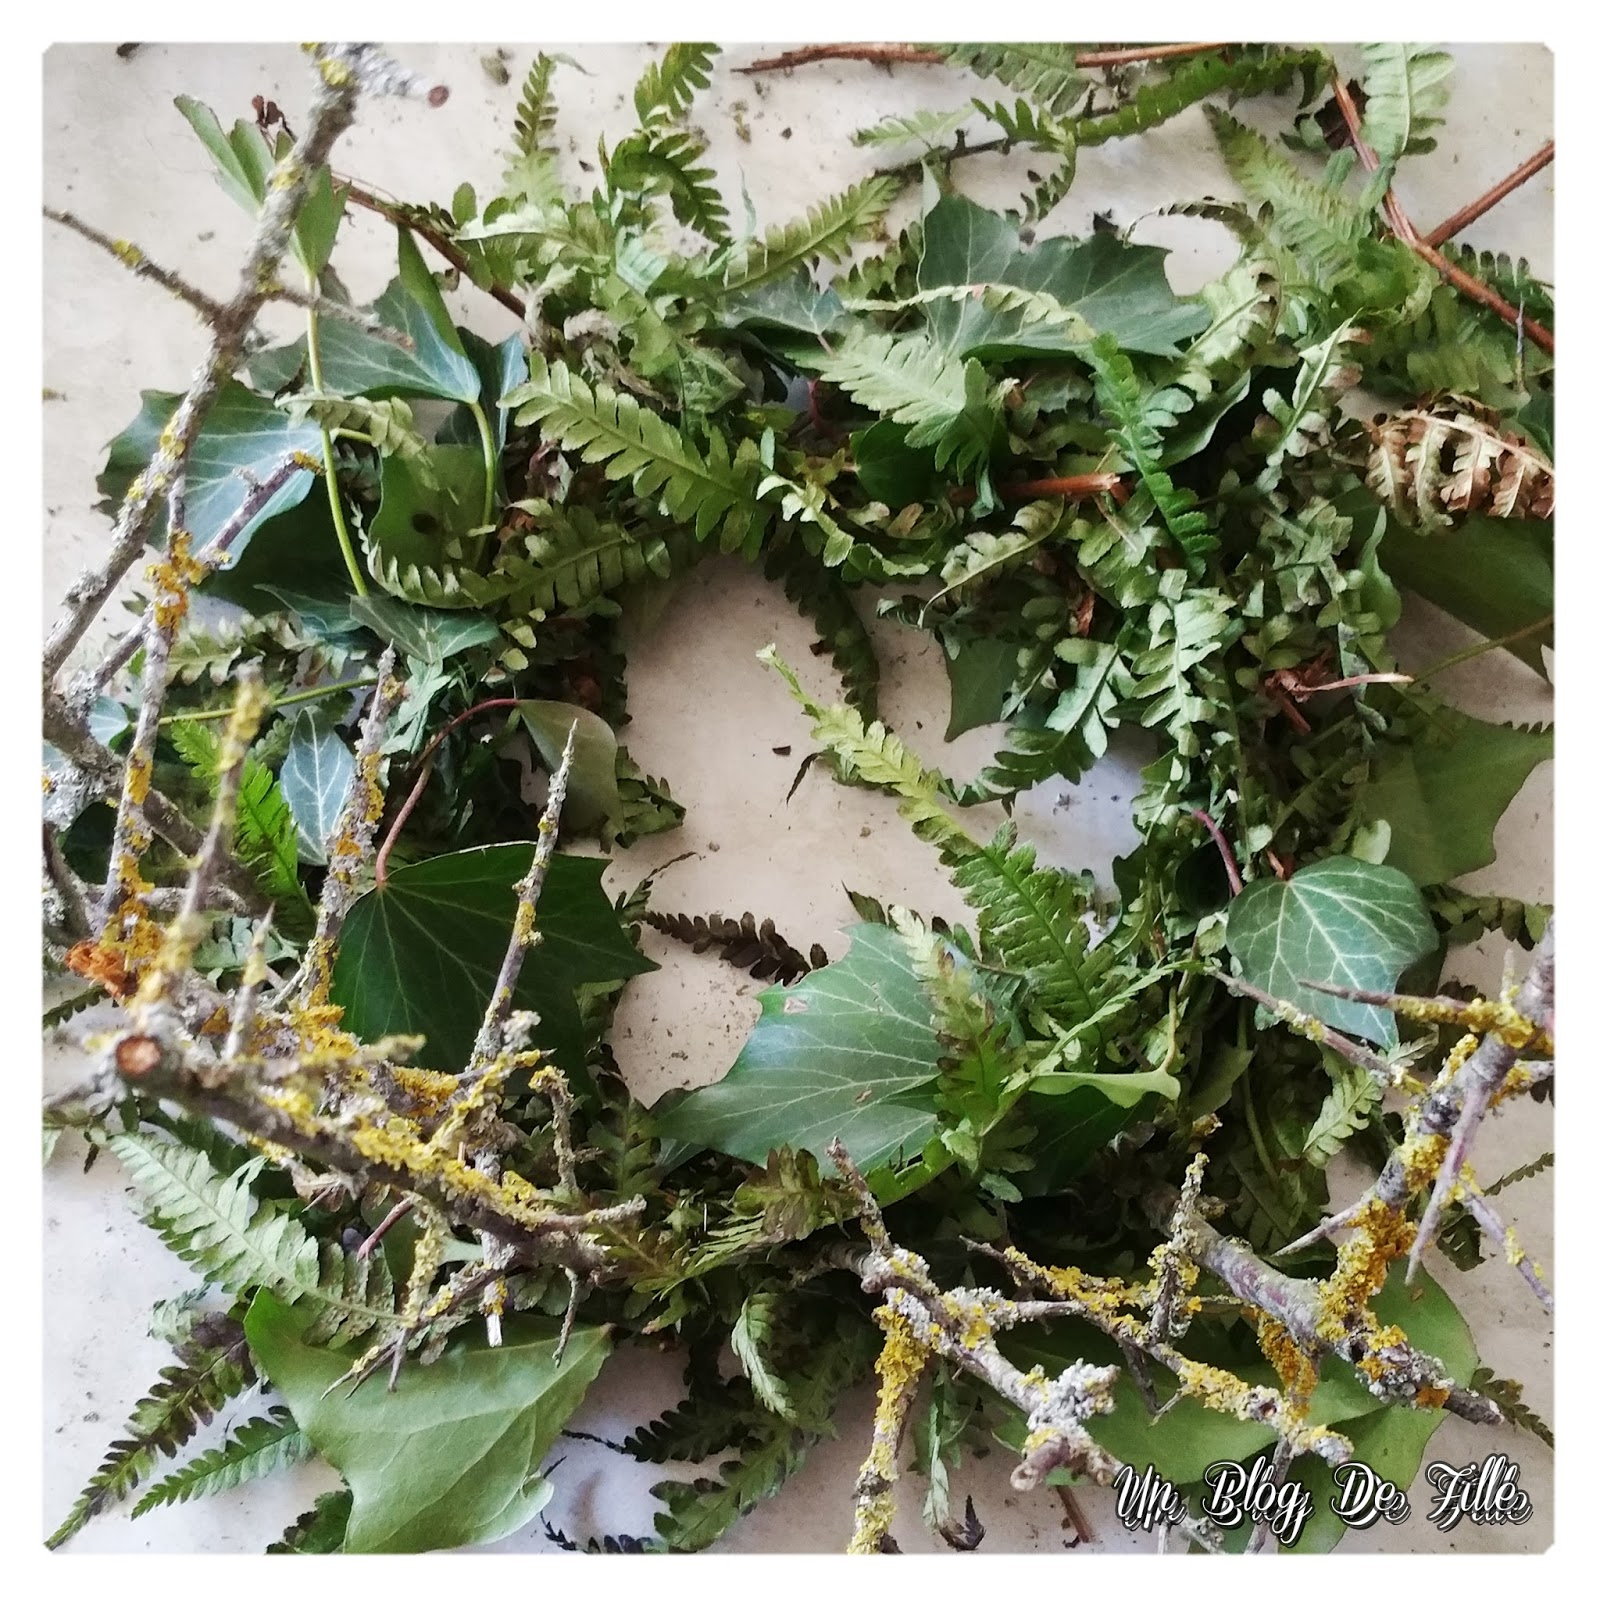 https://unblogdefille.blogspot.fr/2018/02/diy-couronne-de-lierre-dame-nature.html